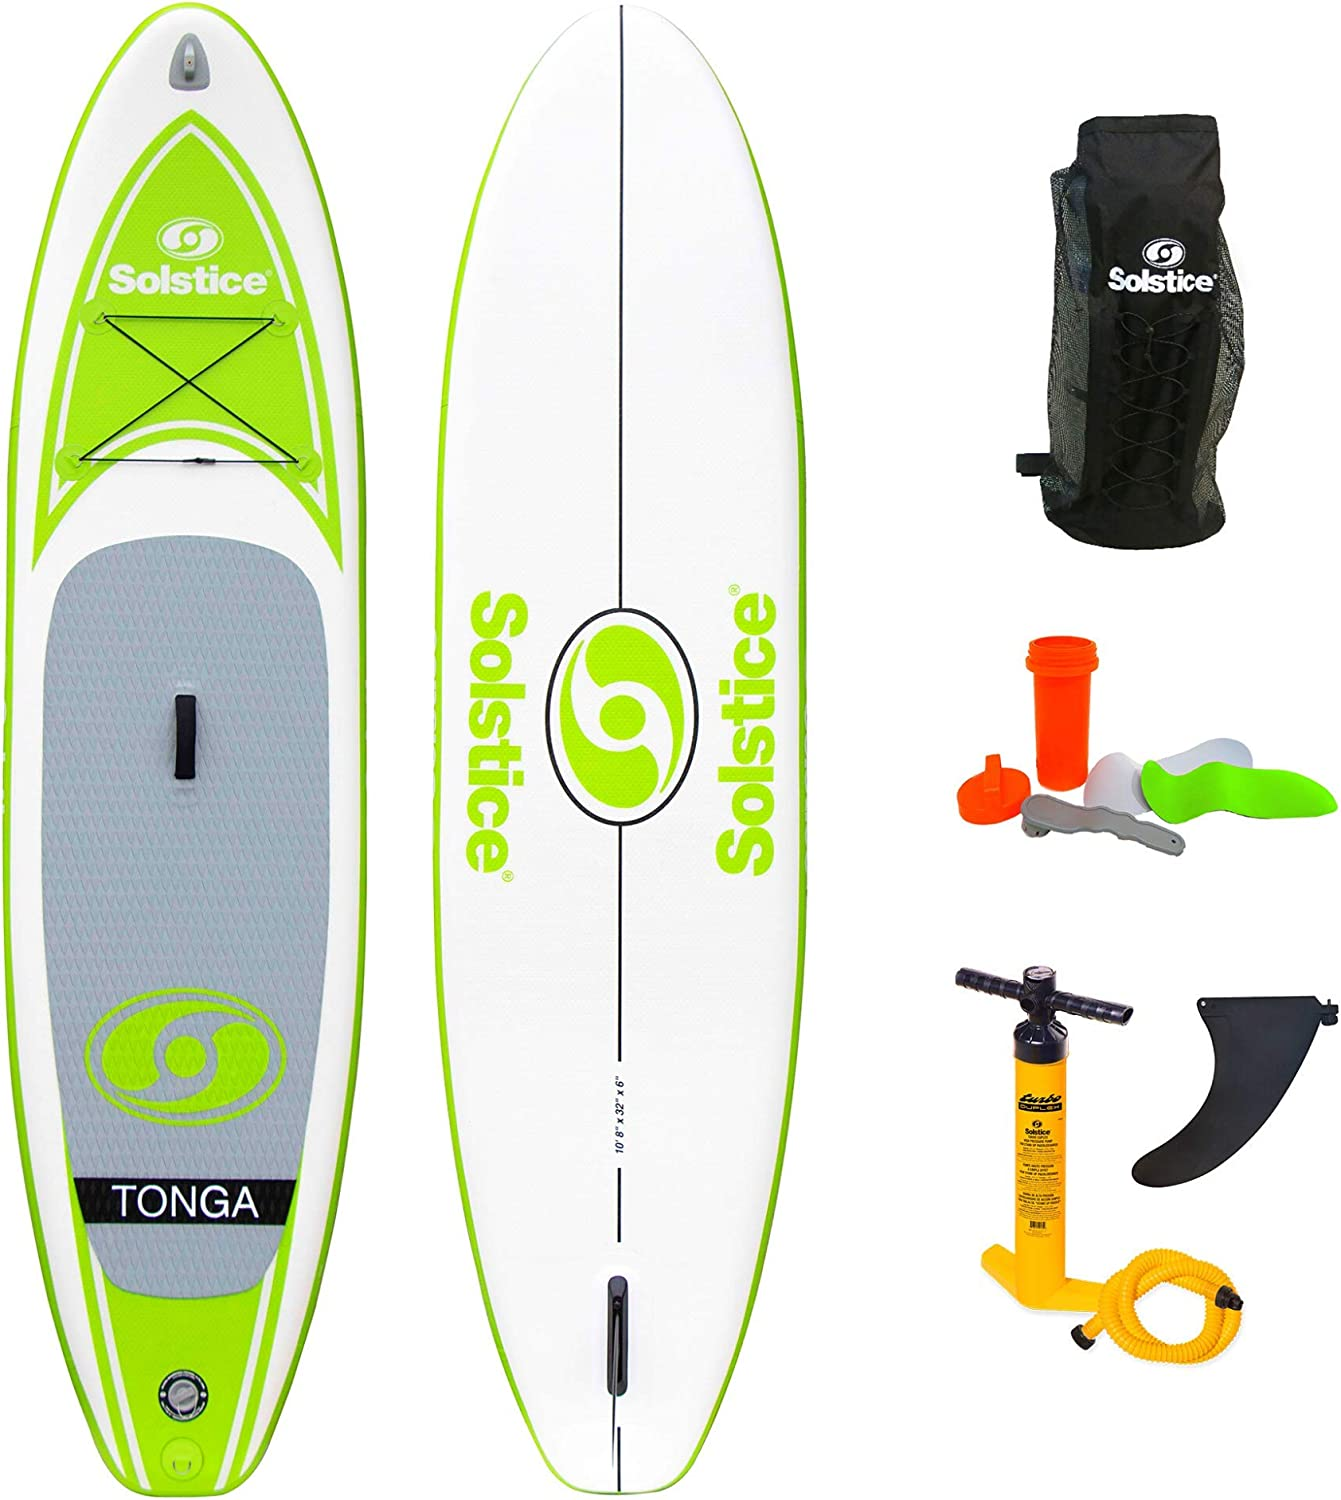 Amazon.com : Solstice by Swimline Tonga Inflatable Stand Up Paddleboard :  Sports & Outdoors